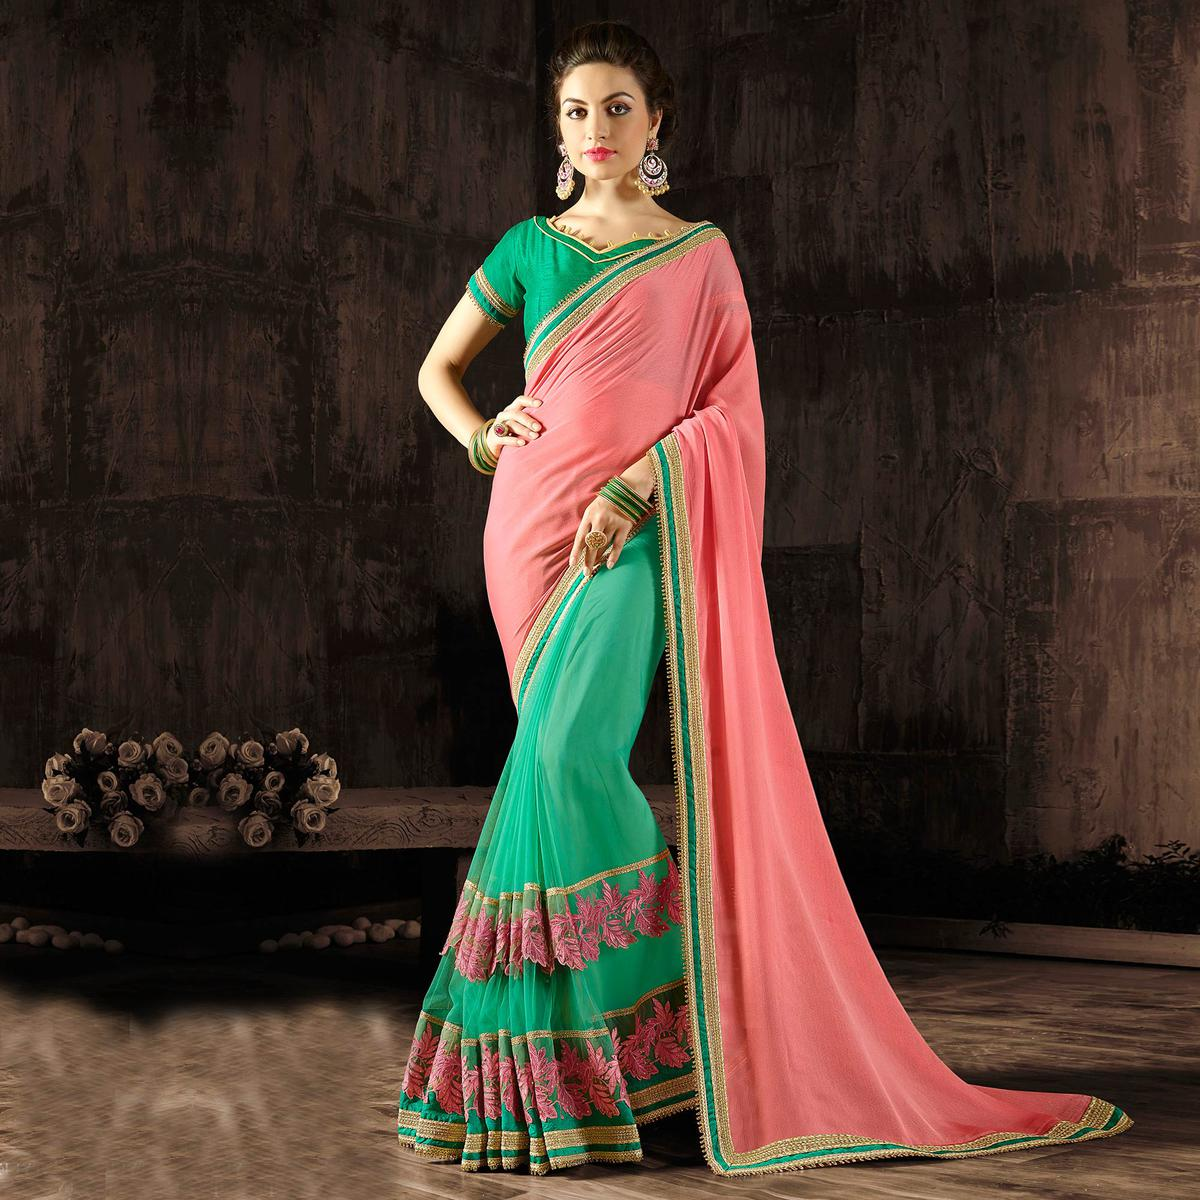 Beautiful Pink-Green Colored Designer Embroidered Georgette And Moss Chiffon Saree